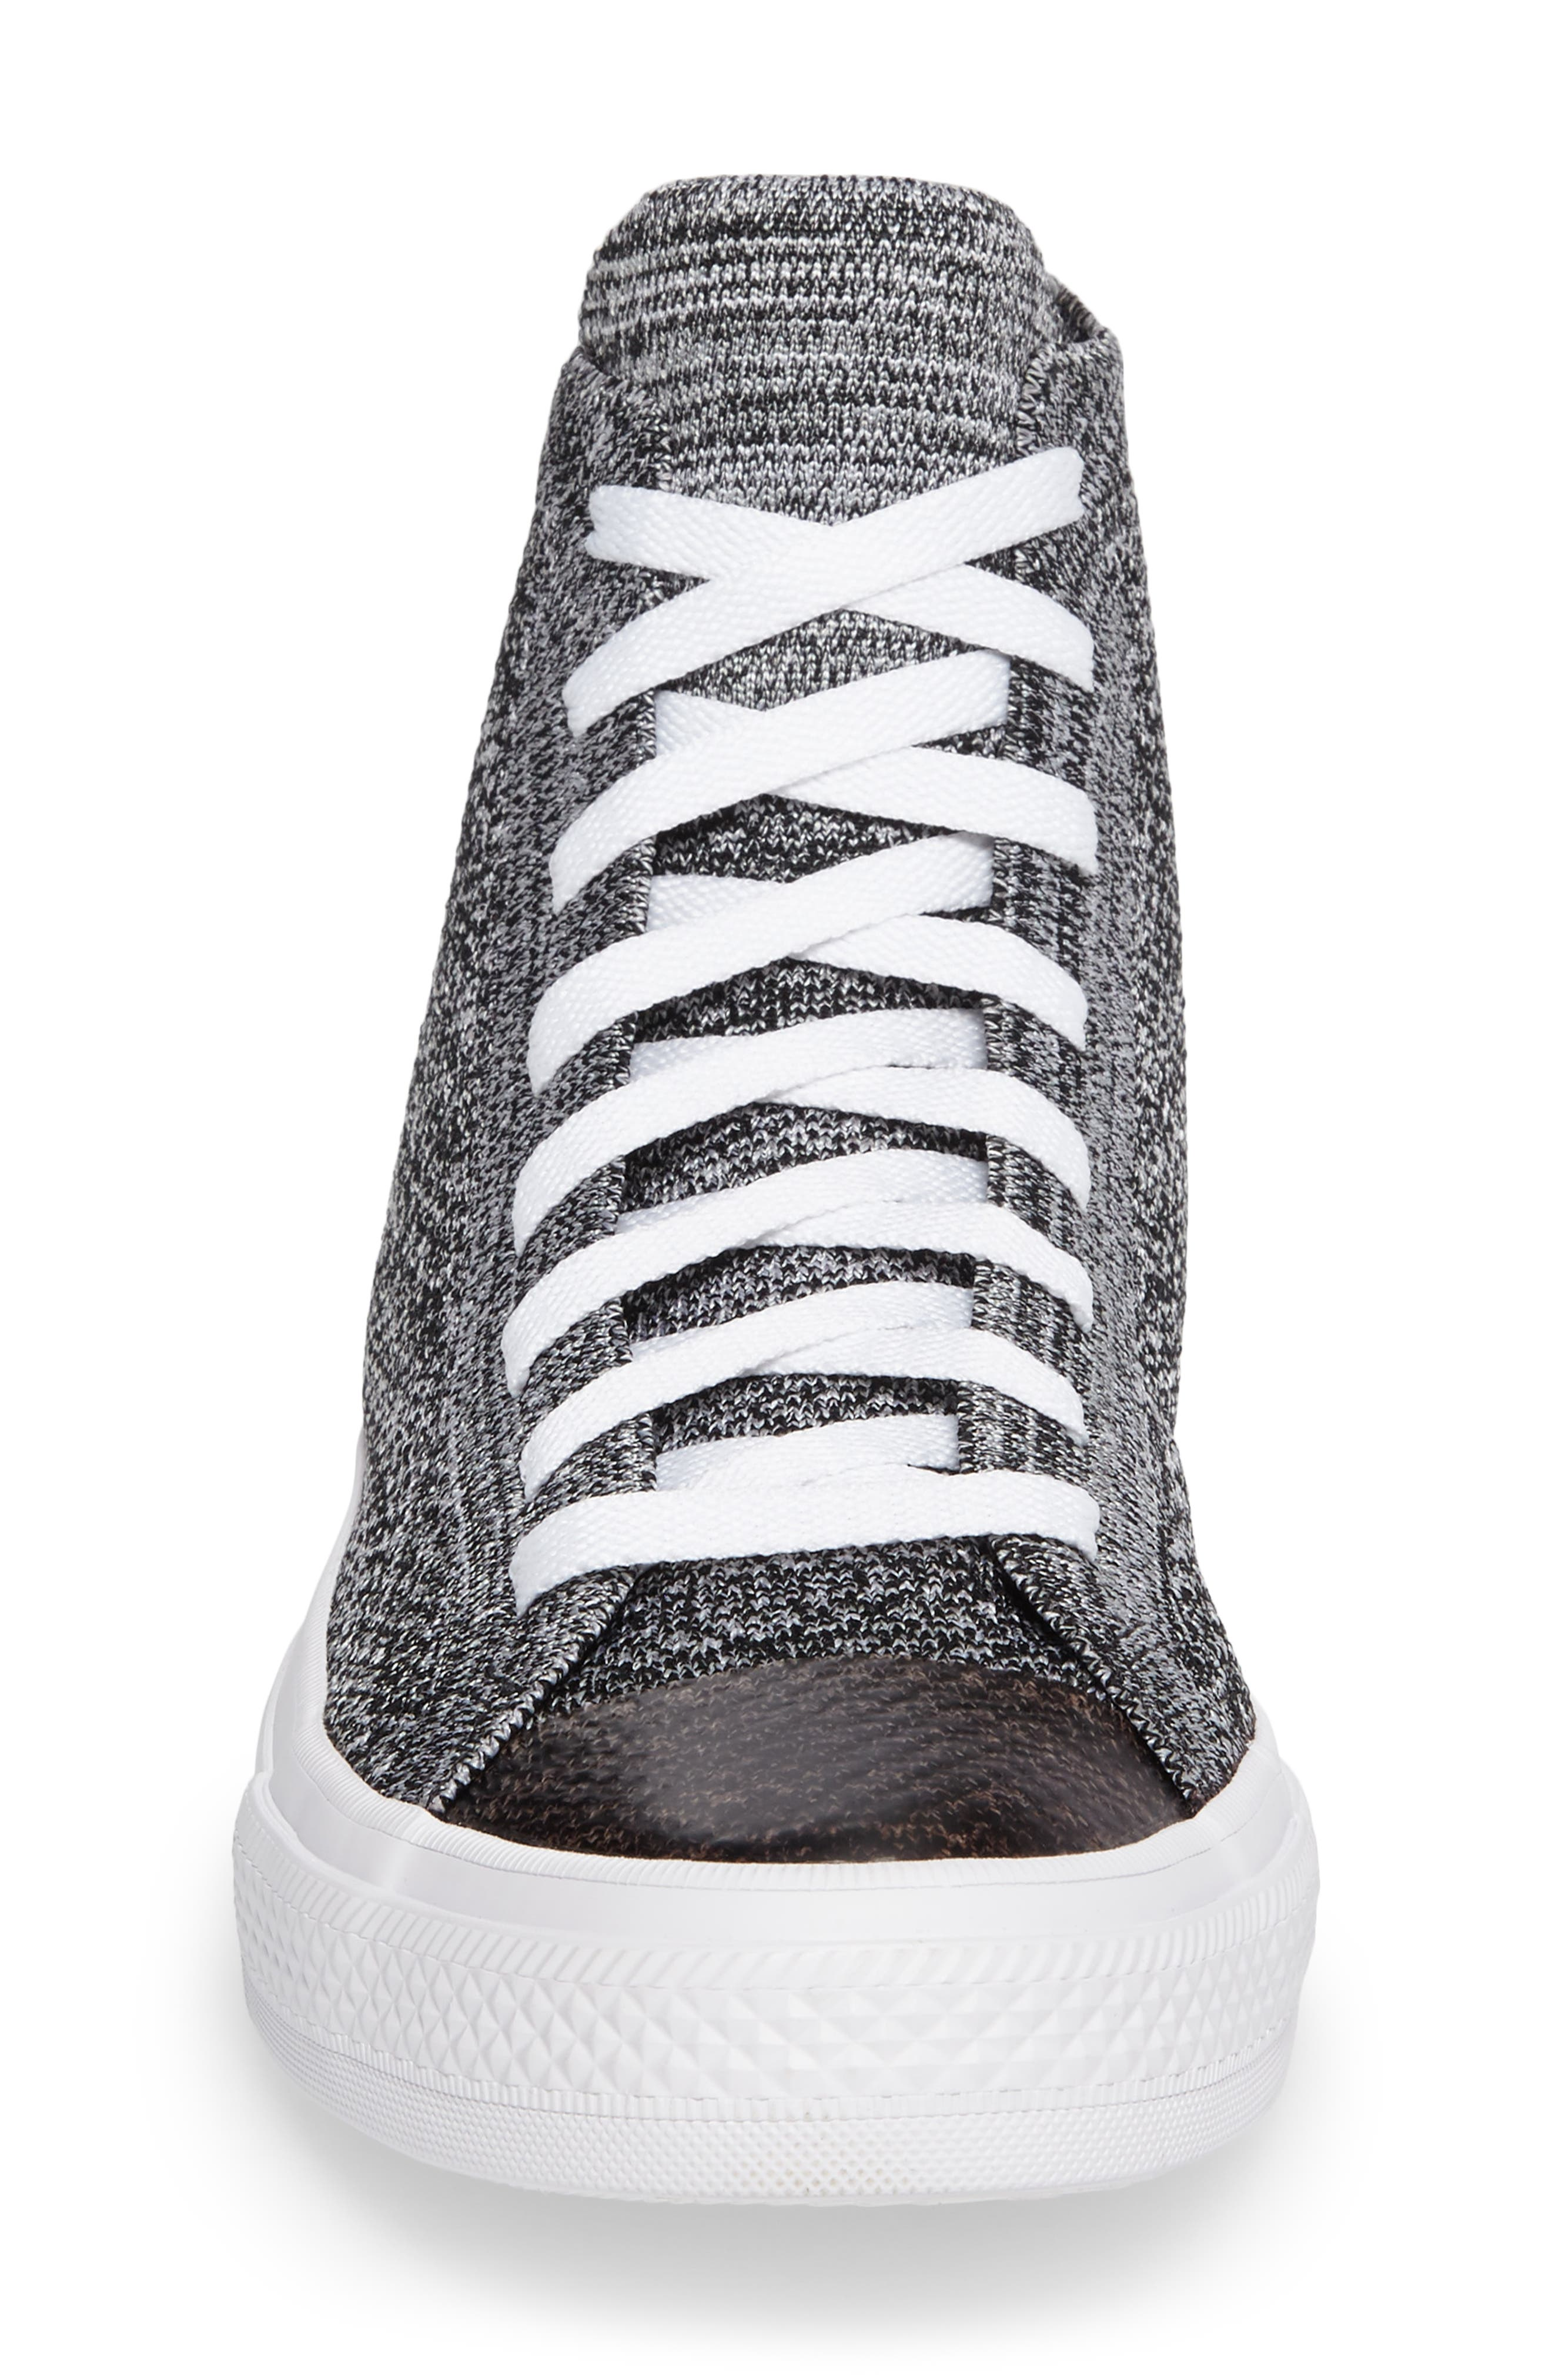 Chuck Taylor<sup>®</sup> All Star<sup>®</sup> Flyknit Hi Sneaker,                             Alternate thumbnail 20, color,